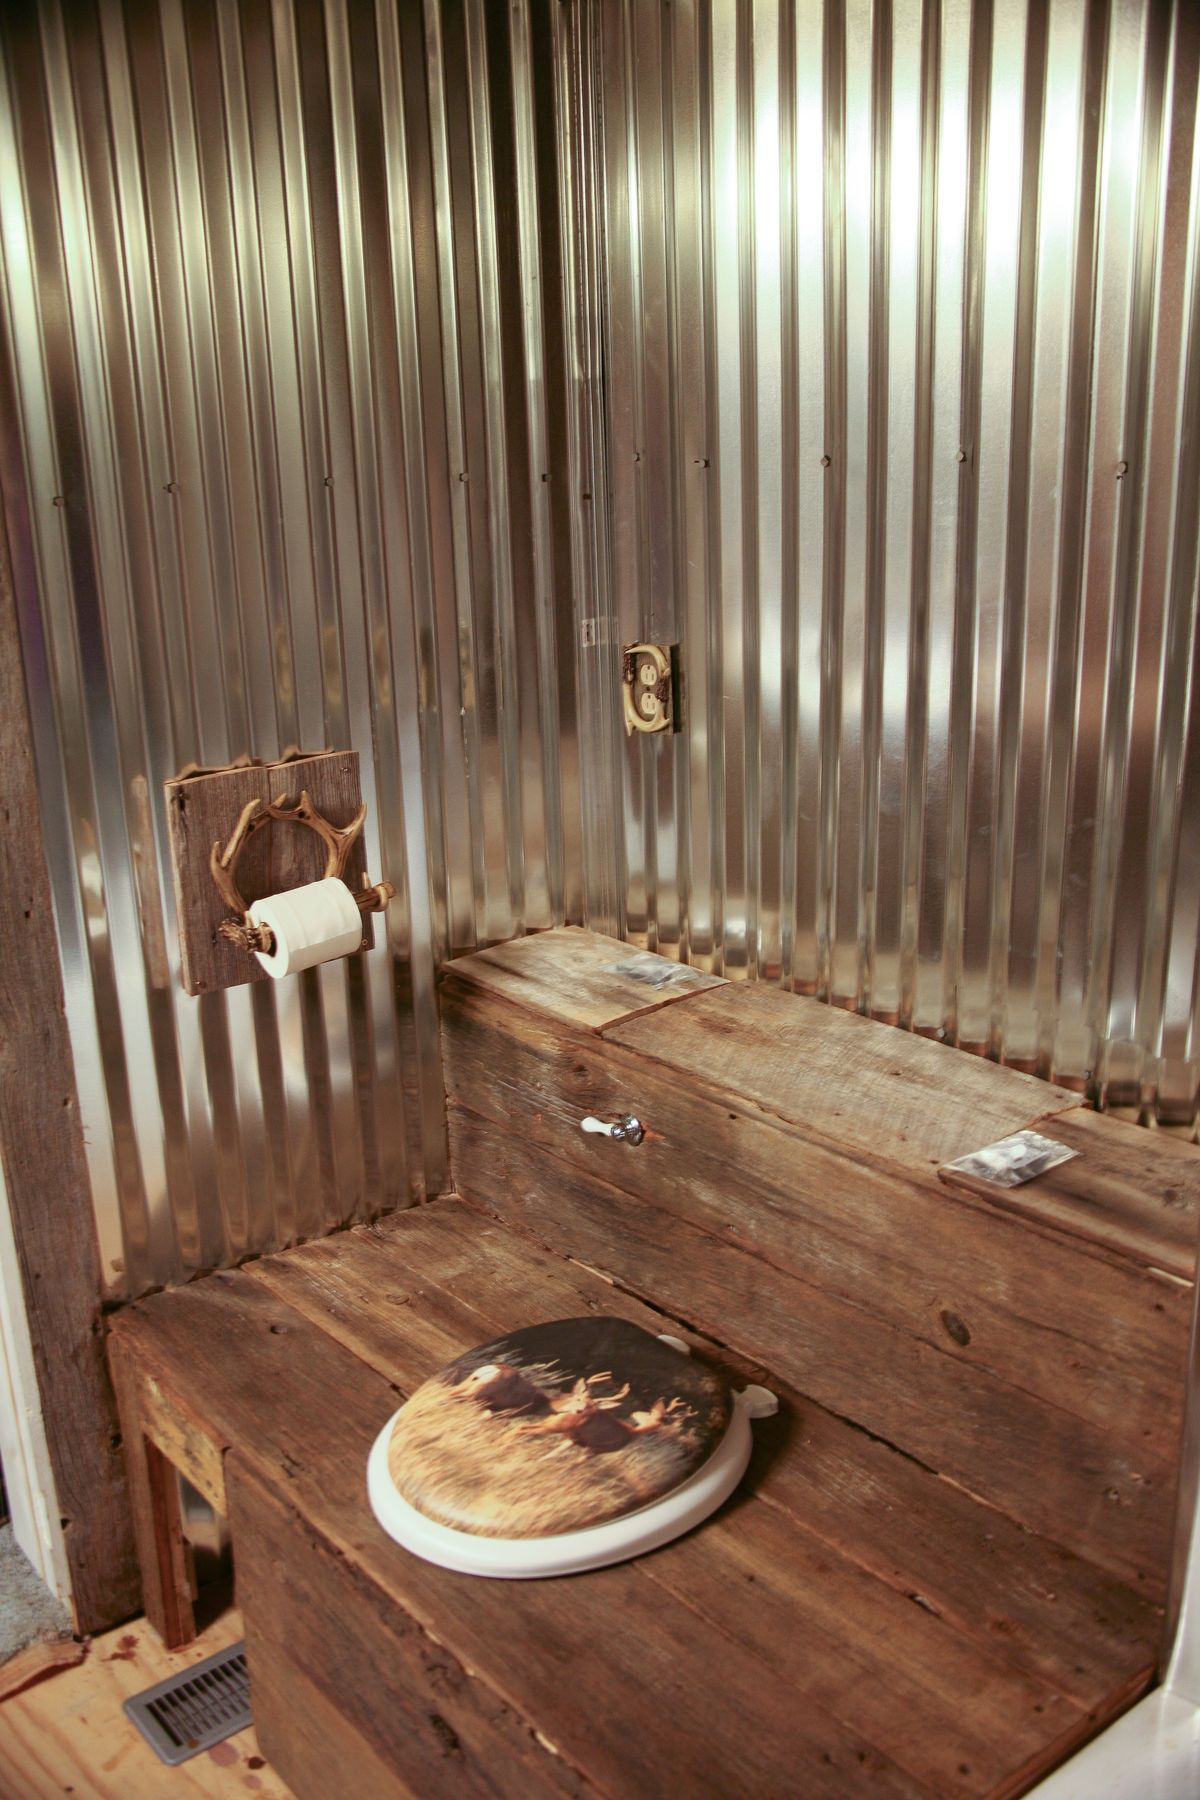 Outhouse Inspired Toilet Cover Rustic Look In Potty Room With